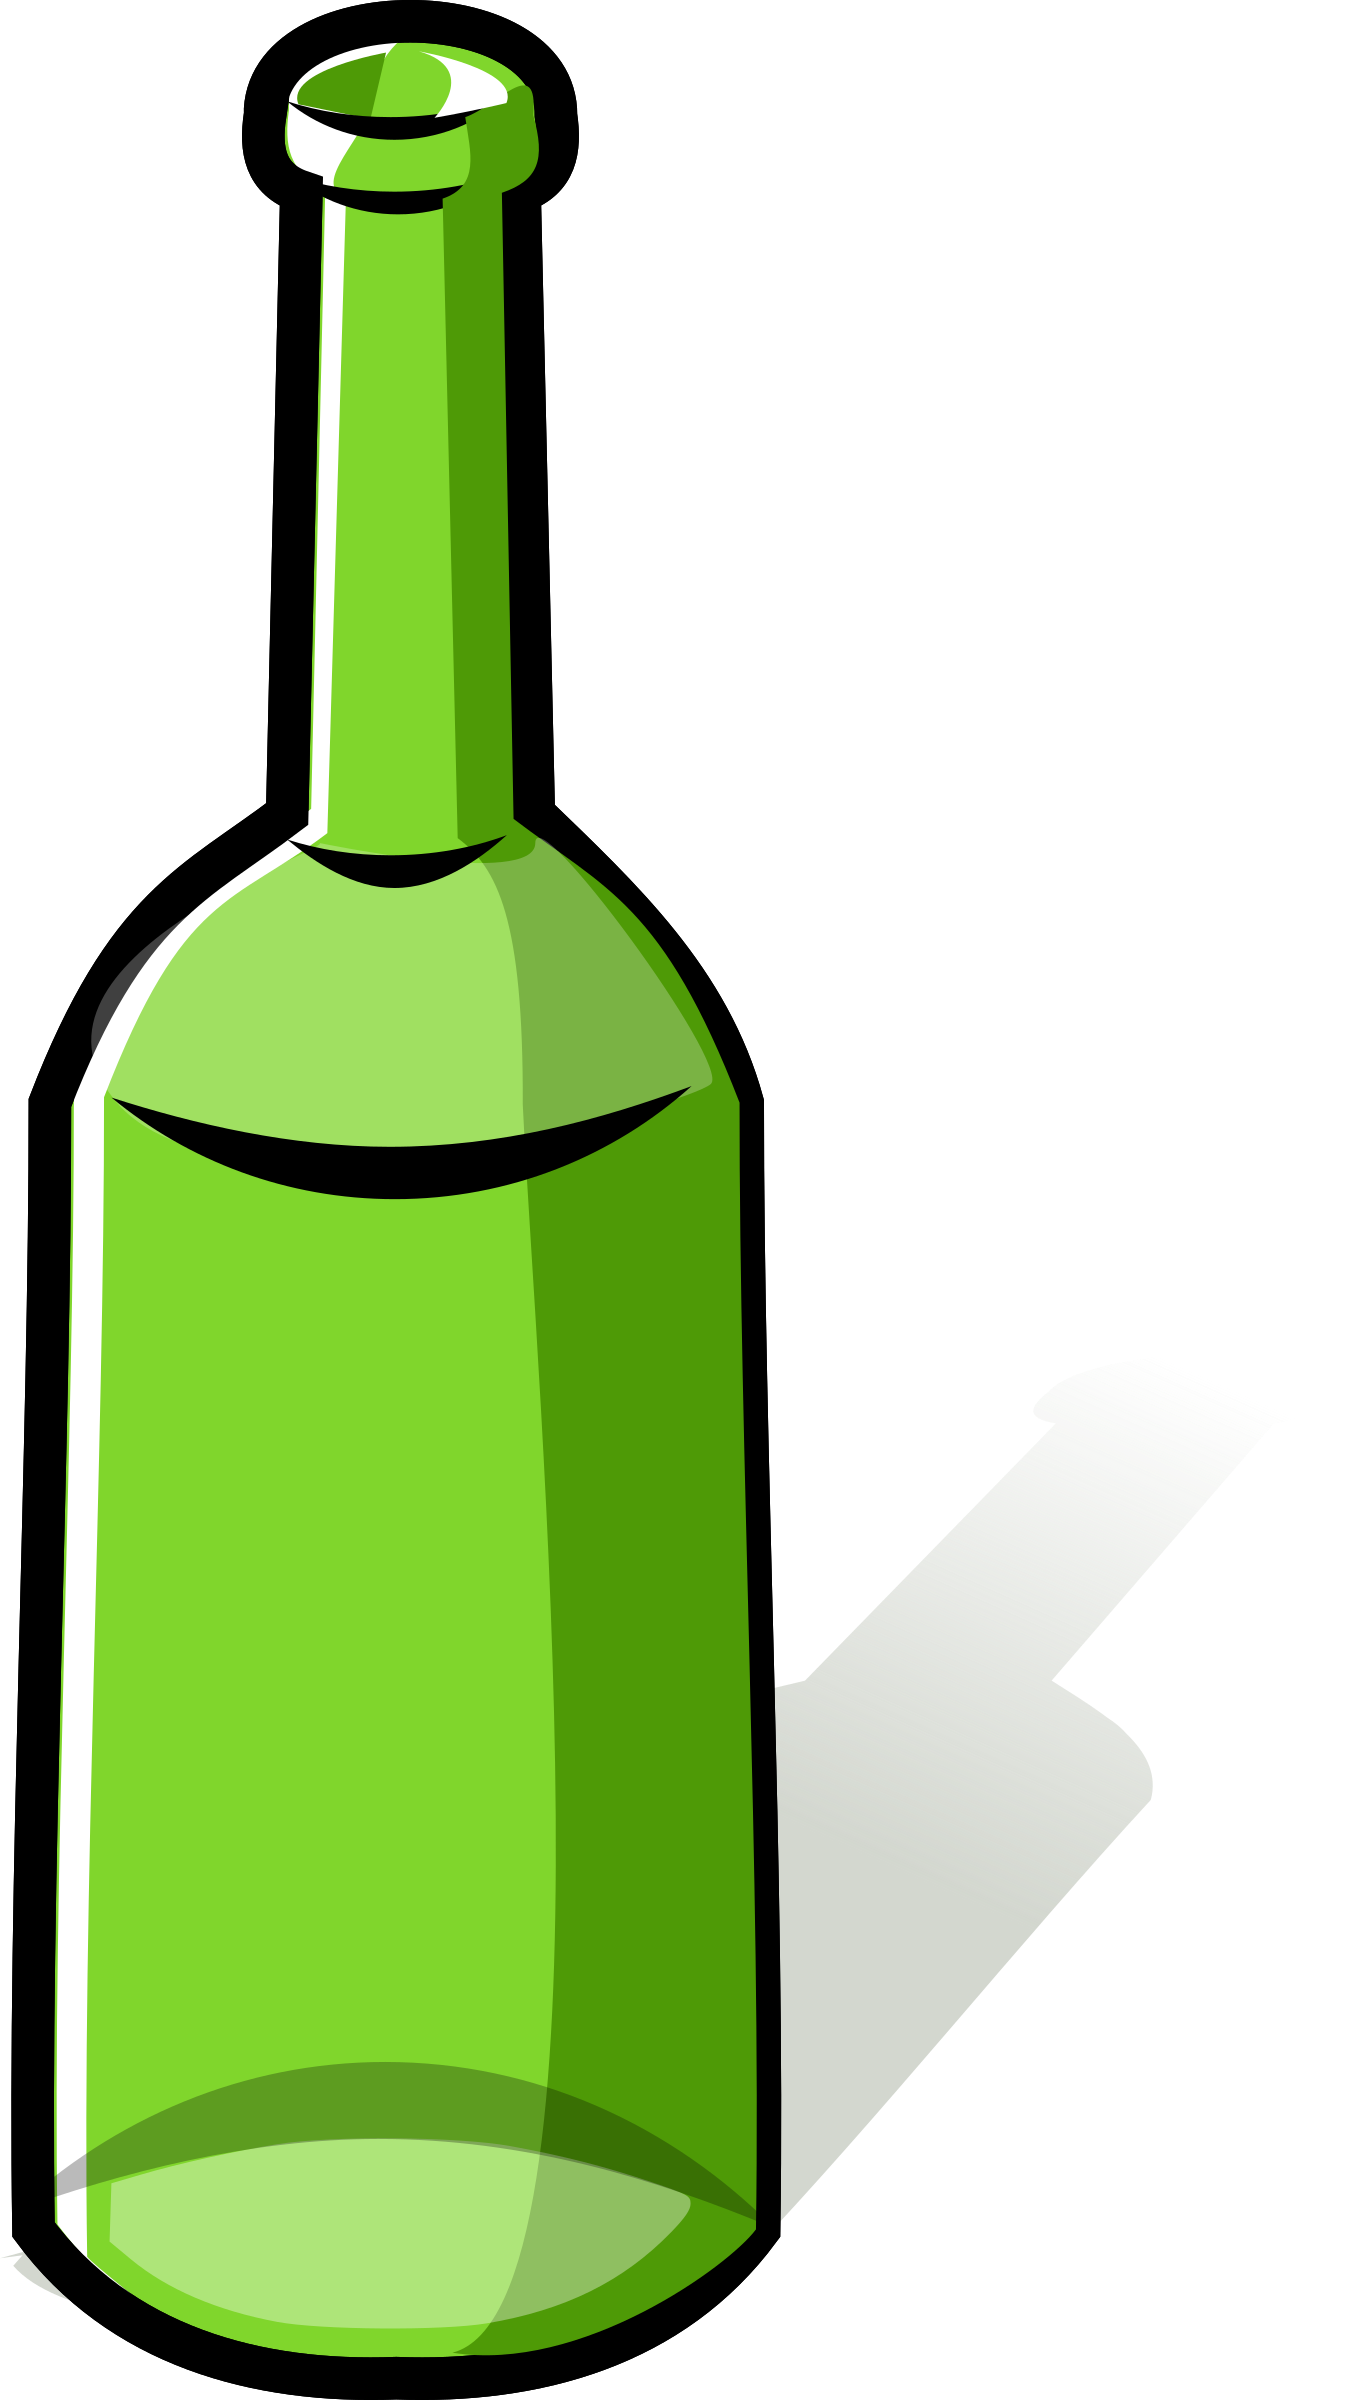 Empty bottle clipart clipart images gallery for free download.